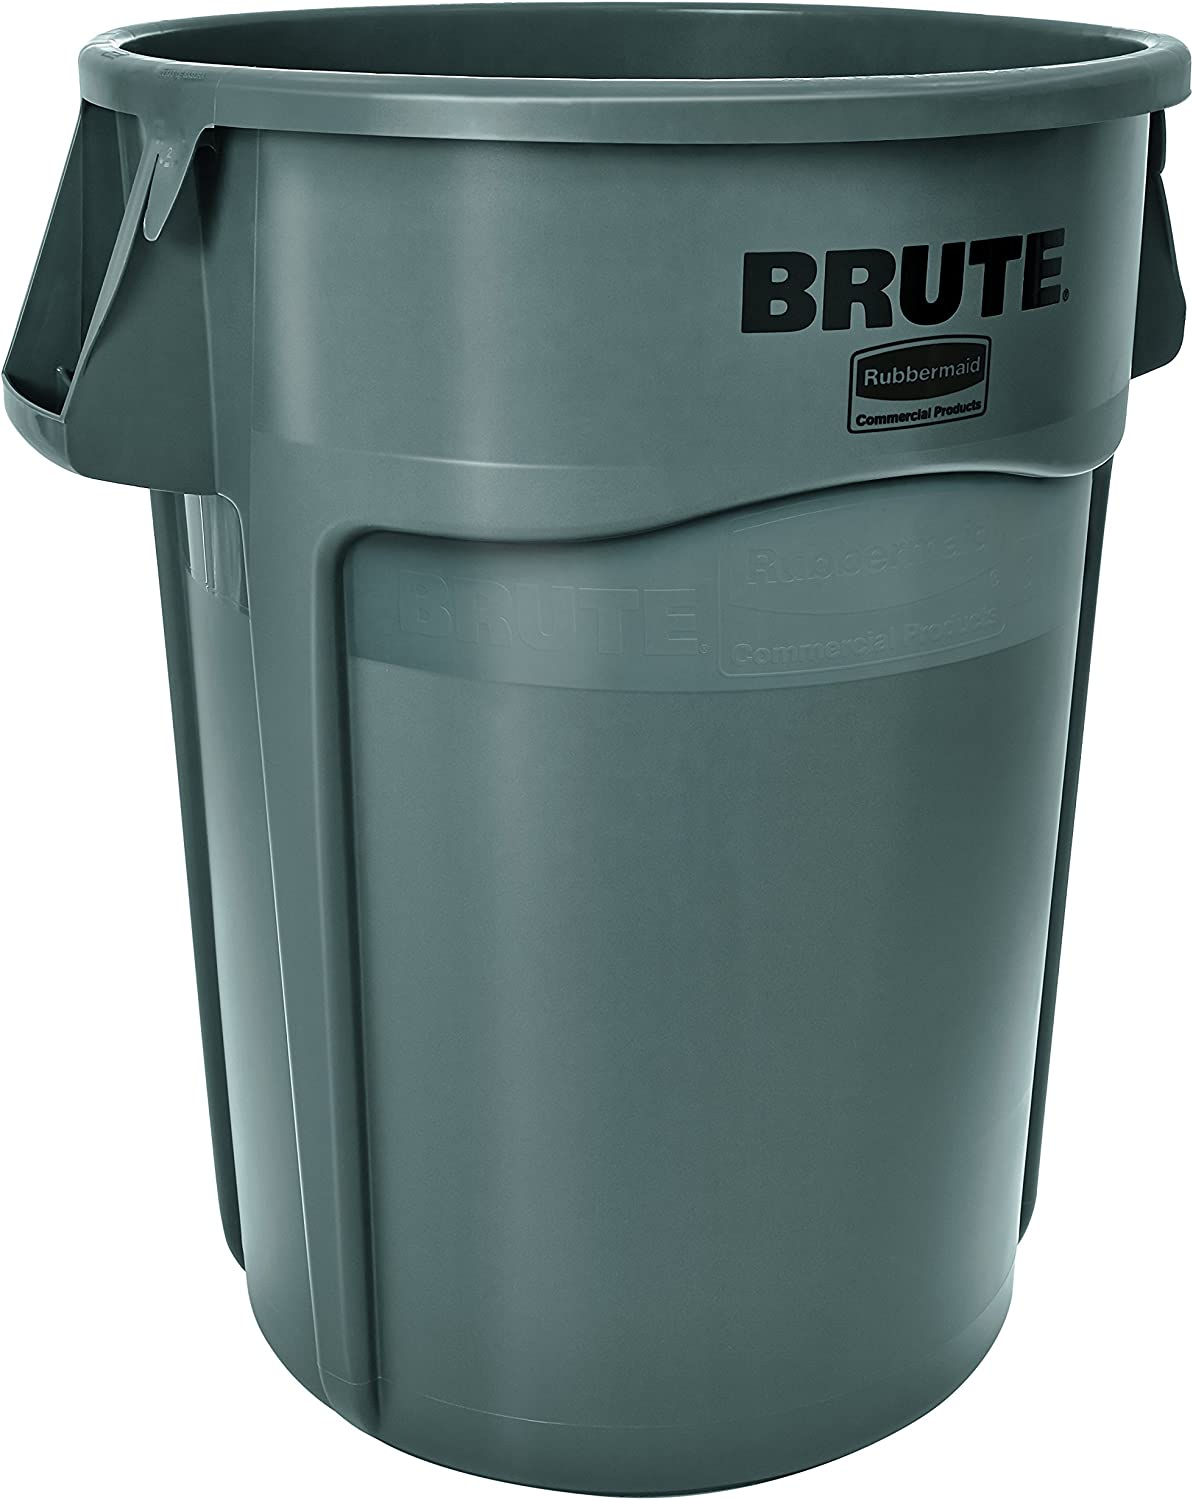 Cart Dolly 20 32 44 55 For Trash Can Brute Plastic Gallon Large Garbage Kitchen